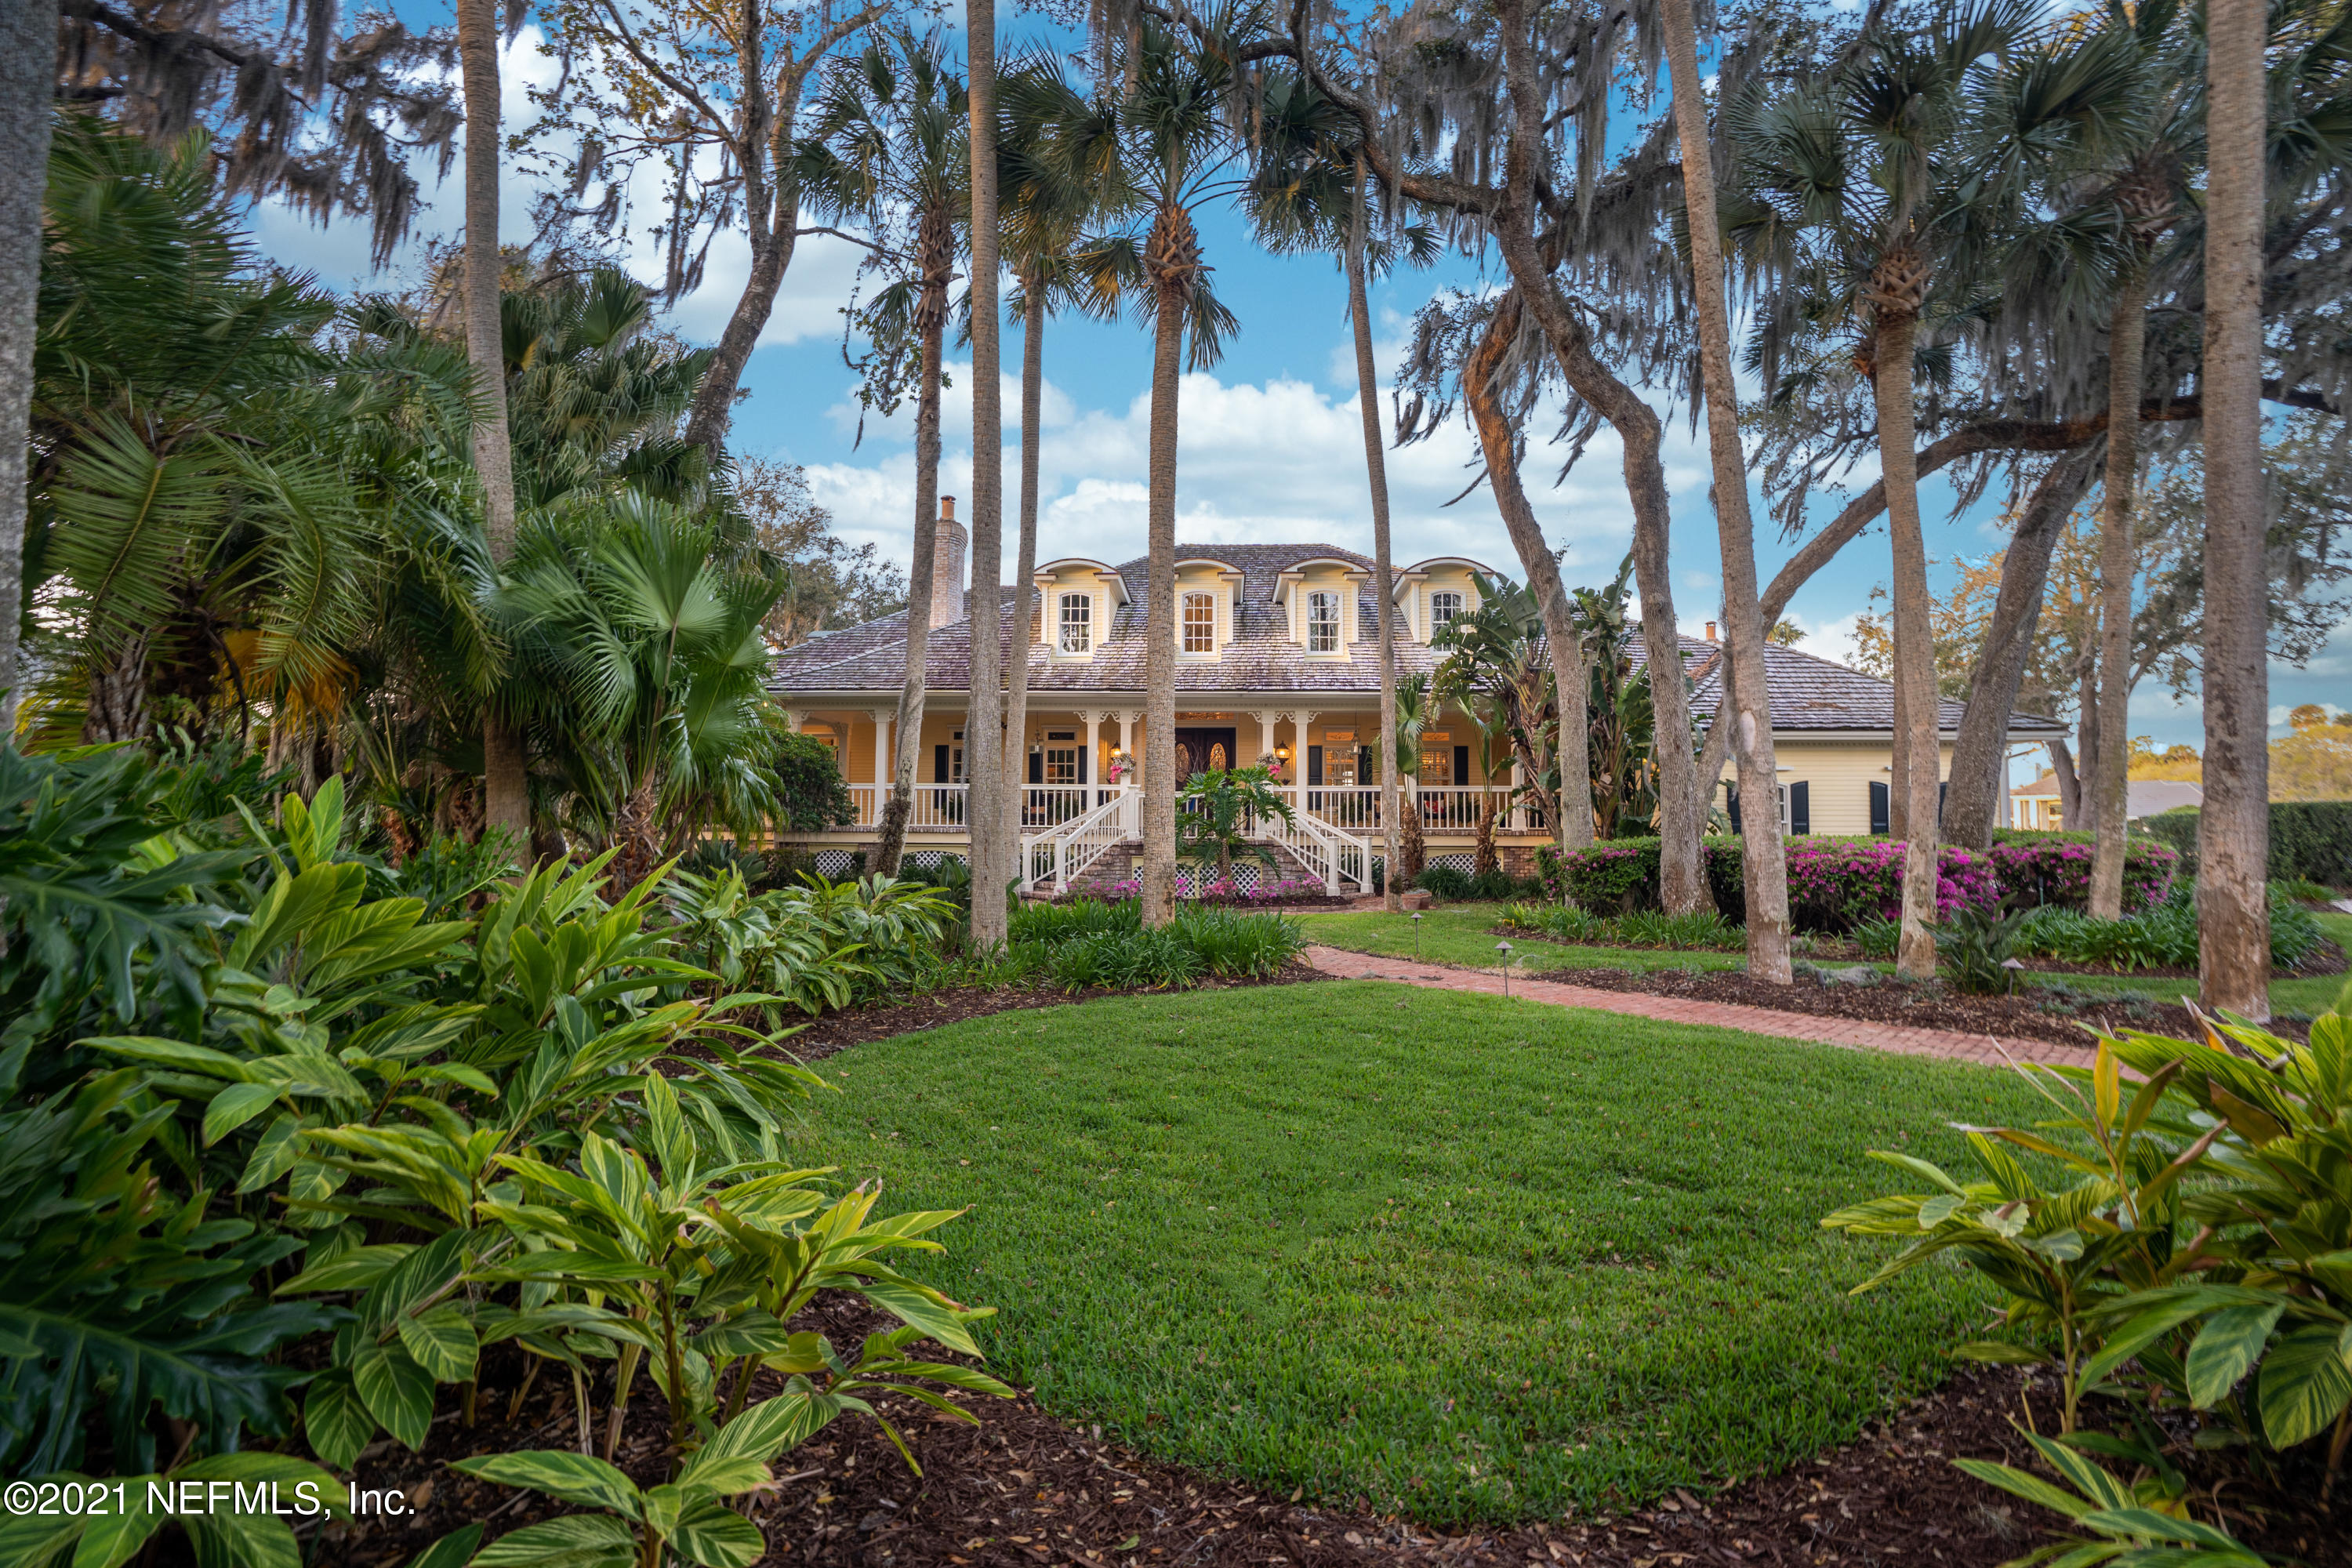 This Southern low-country style beautiful home, featured as one of Ponte Vedra Beach, Florida's most distinctive homes, is in a premier, secure and gated neighborhood within this prestigious beachside community. The property sits on the most premier lot in the neighborhood with a water to golf view overlooking the 36 acre community lake, the clubhouse and the 18th green. This beautiful home has an elegant and timeless design with rich wood floors, custom millwork, and luxuriously appointed interior and exterior finishes.  After walking up the reclaimed brick path and steps, the grand entry with an elegant curved staircase gives way to a spacious living room that seamlessly flows to the charming wrap around porch where you can sit and enjoy the sunset views that are showcased from almost every room of the home.  With over 6300 square feet, 5 Bedrooms, 4.5 bathrooms; 3 car garage,  abundant walk-in closets and storage; home office; home gym; separate family room/ game room, and newly renovated pool with travertine decking, fire pit and summer kitchen, this is the ideal property for entertaining and family living. The main level primary suite offers a private sitting area, double walk in closets and a lavish owners bath with Waterworks fixtures and tub. The chefs kitchen features exceptional brick detailing and is equipped with granite countertops, Sub Zero refrigerator, wine cooler and ice maker, Wolf gas cooktop range, Wolf built-in ovens, Thermador built-in coffee machine , warming drawer, and two Bosch dishwashers.  This property offers a one of kind opportunity to live in a premier neighborhood where it is not just an equity membership, it's a lifestyle.  Within the community is a championship 18-hole golf course, tennis, pickle ball, croquet, fitness center, play grounds and an Olympic-sized pool at the Beach House overlooking the Atlantic Ocean that provides private beach access. Call to schedule your private showing.  Kindly provide at least 24 hour notice.